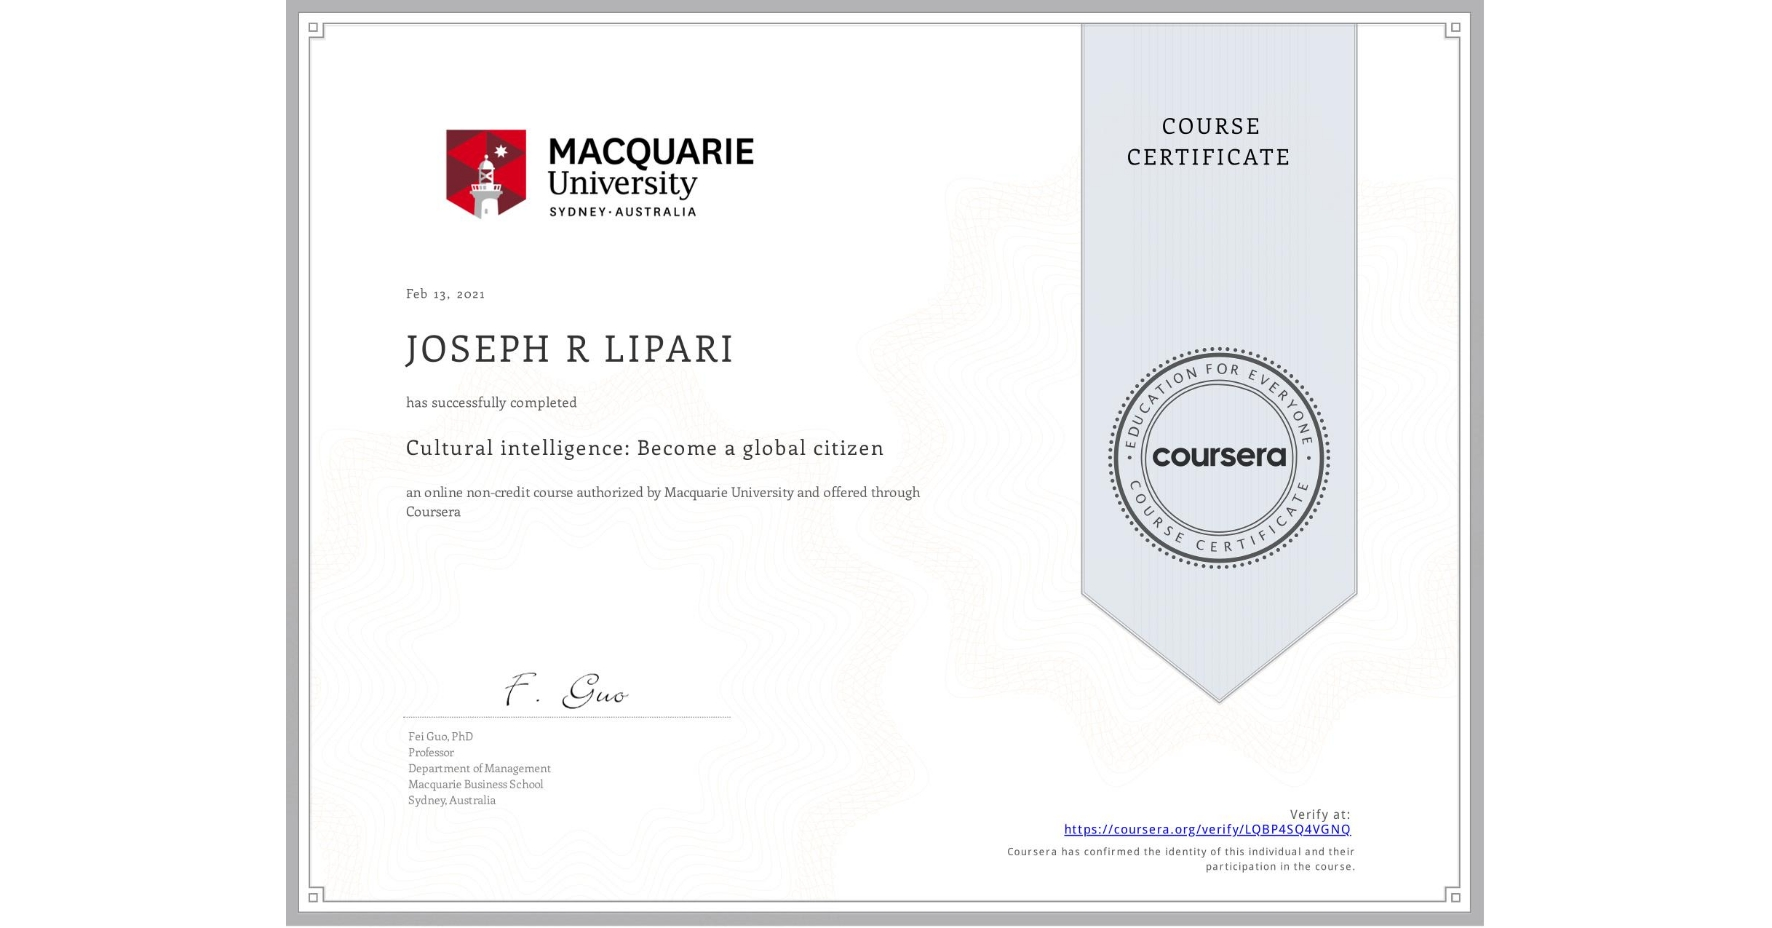 View certificate for JOSEPH R  LIPARI, Cultural intelligence: Become a global citizen, an online non-credit course authorized by Macquarie University and offered through Coursera